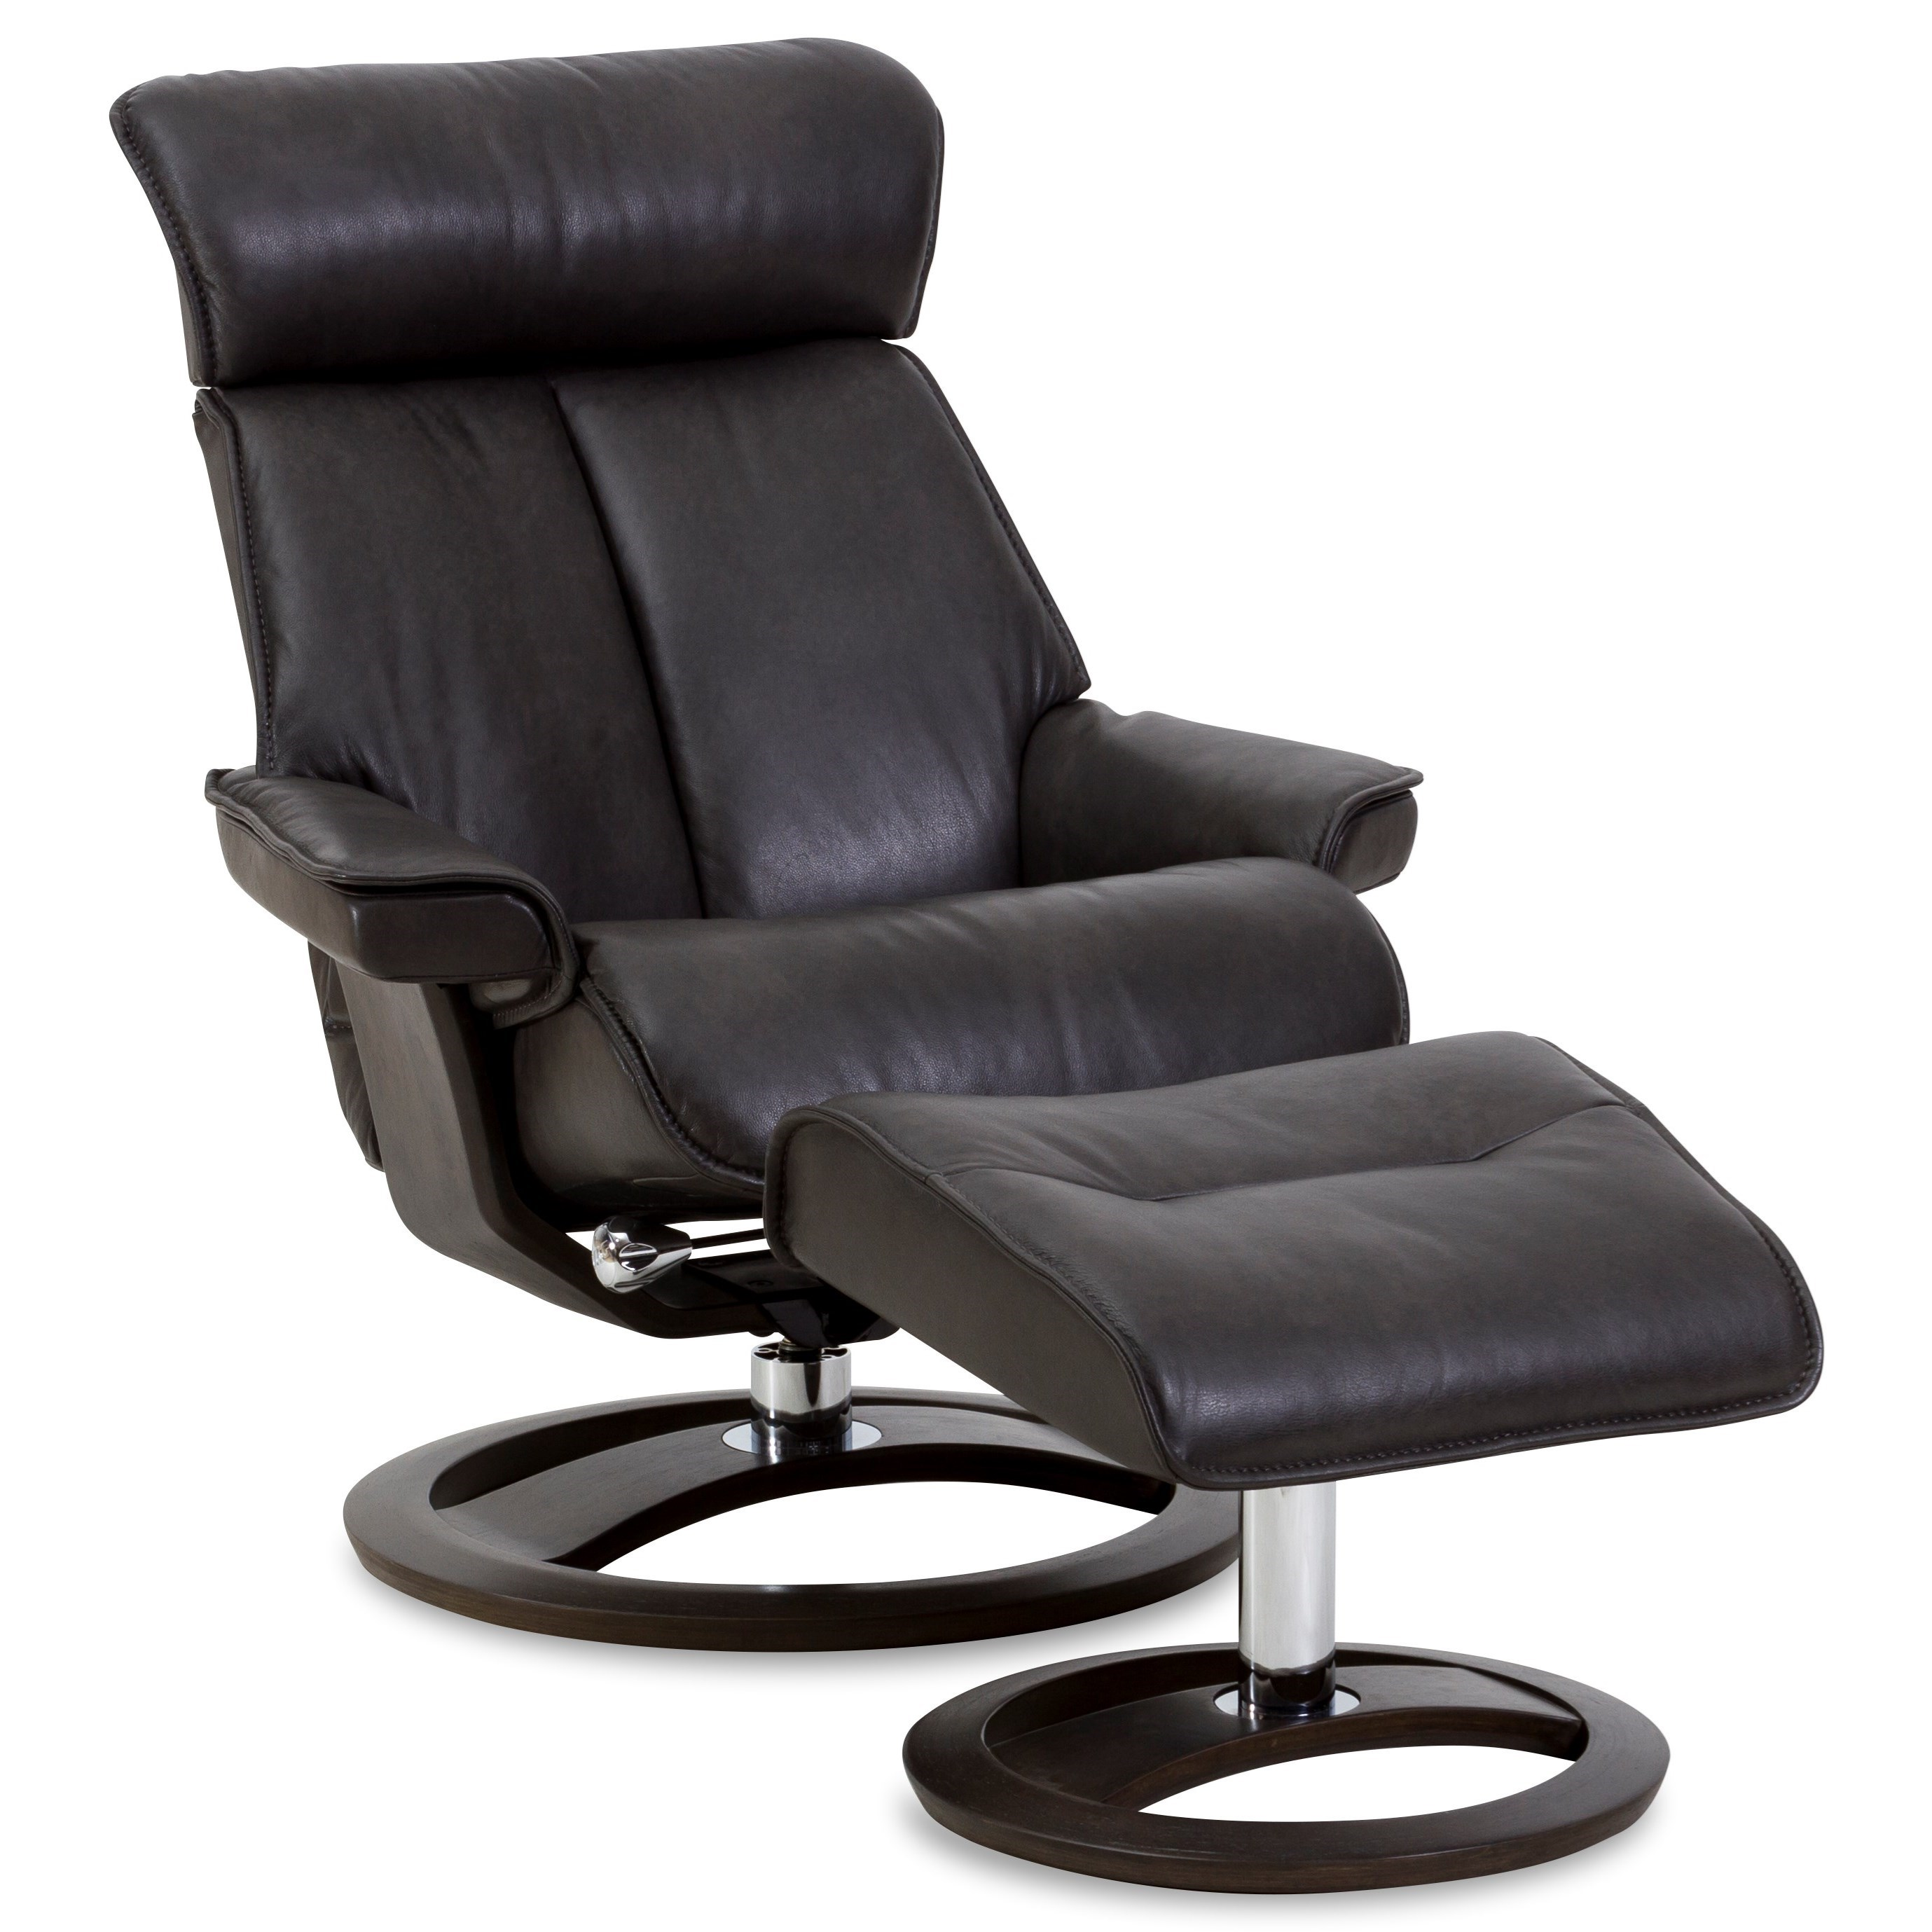 Regal Medium Novel Recliner and Ottoman by IMG Norway at Sprintz Furniture